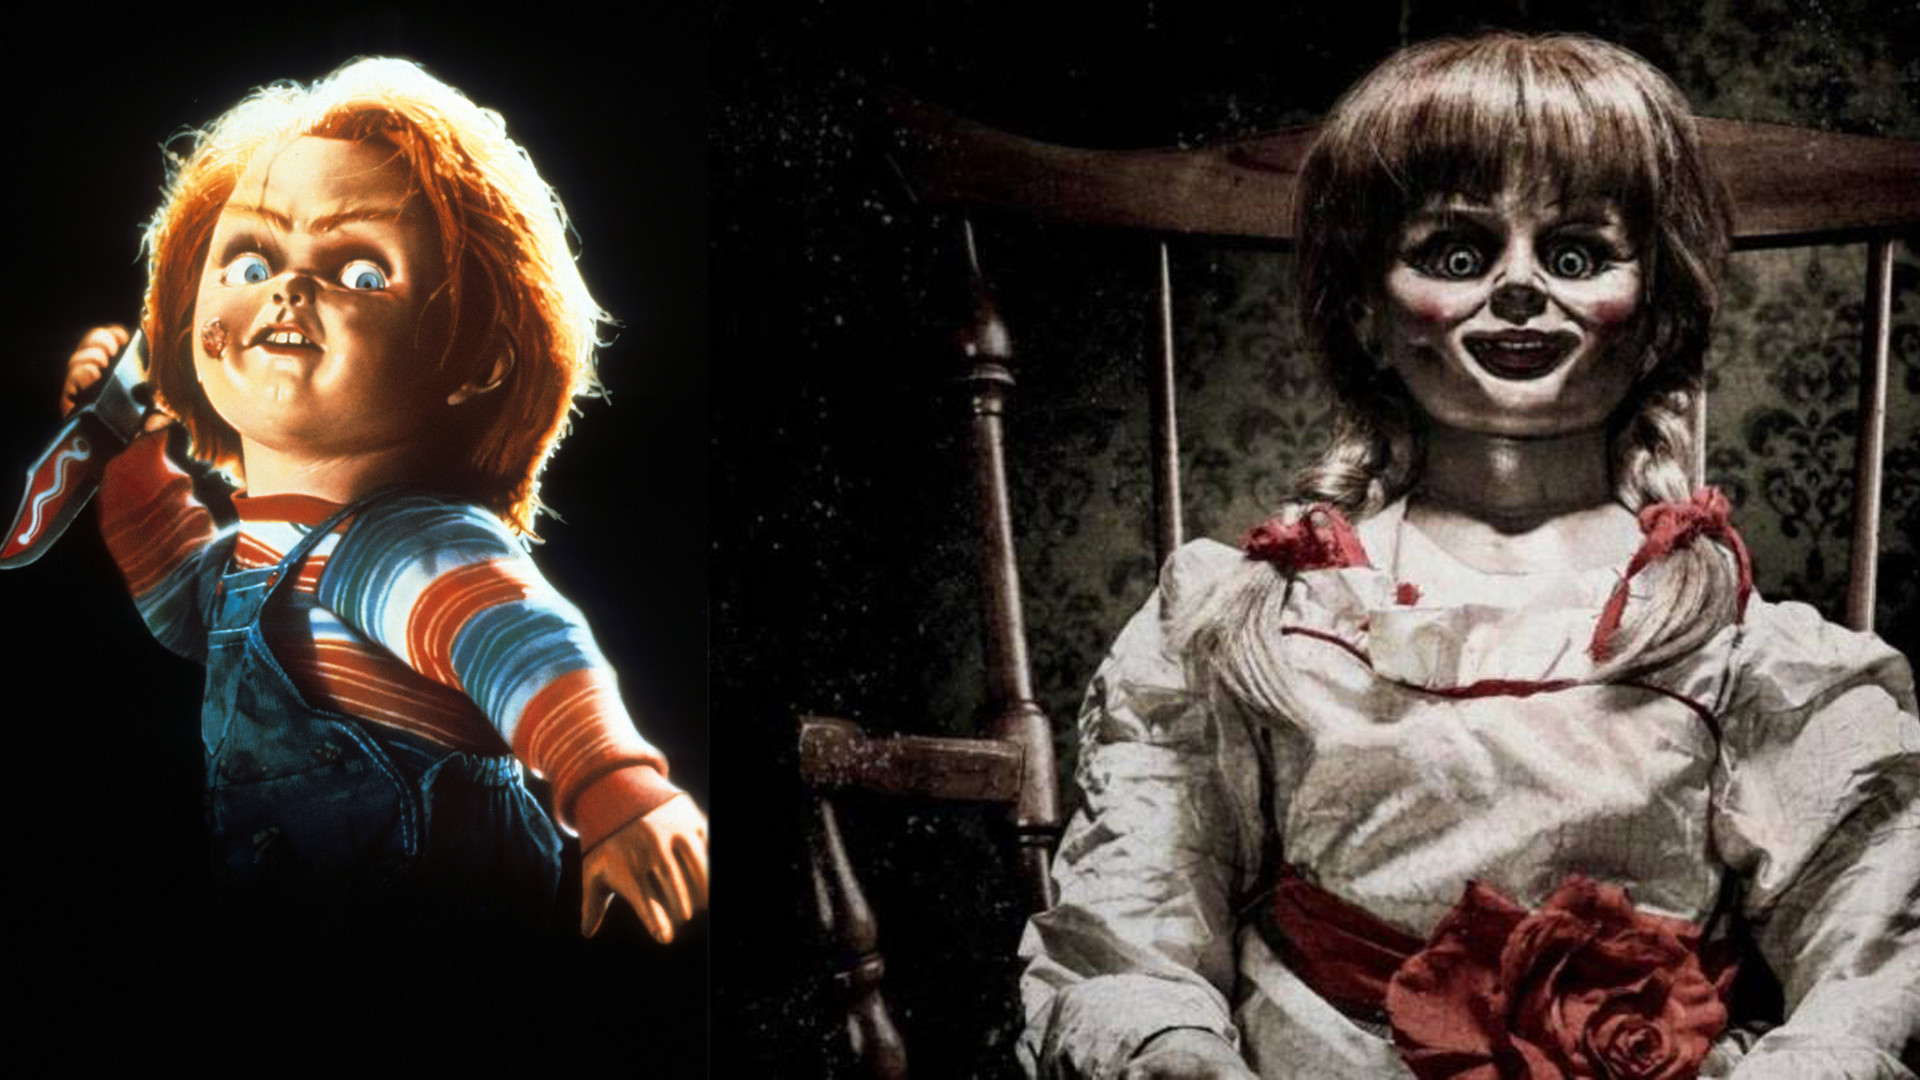 Chucky: Which creepy doll should you fear the most? | SYFY WIRE